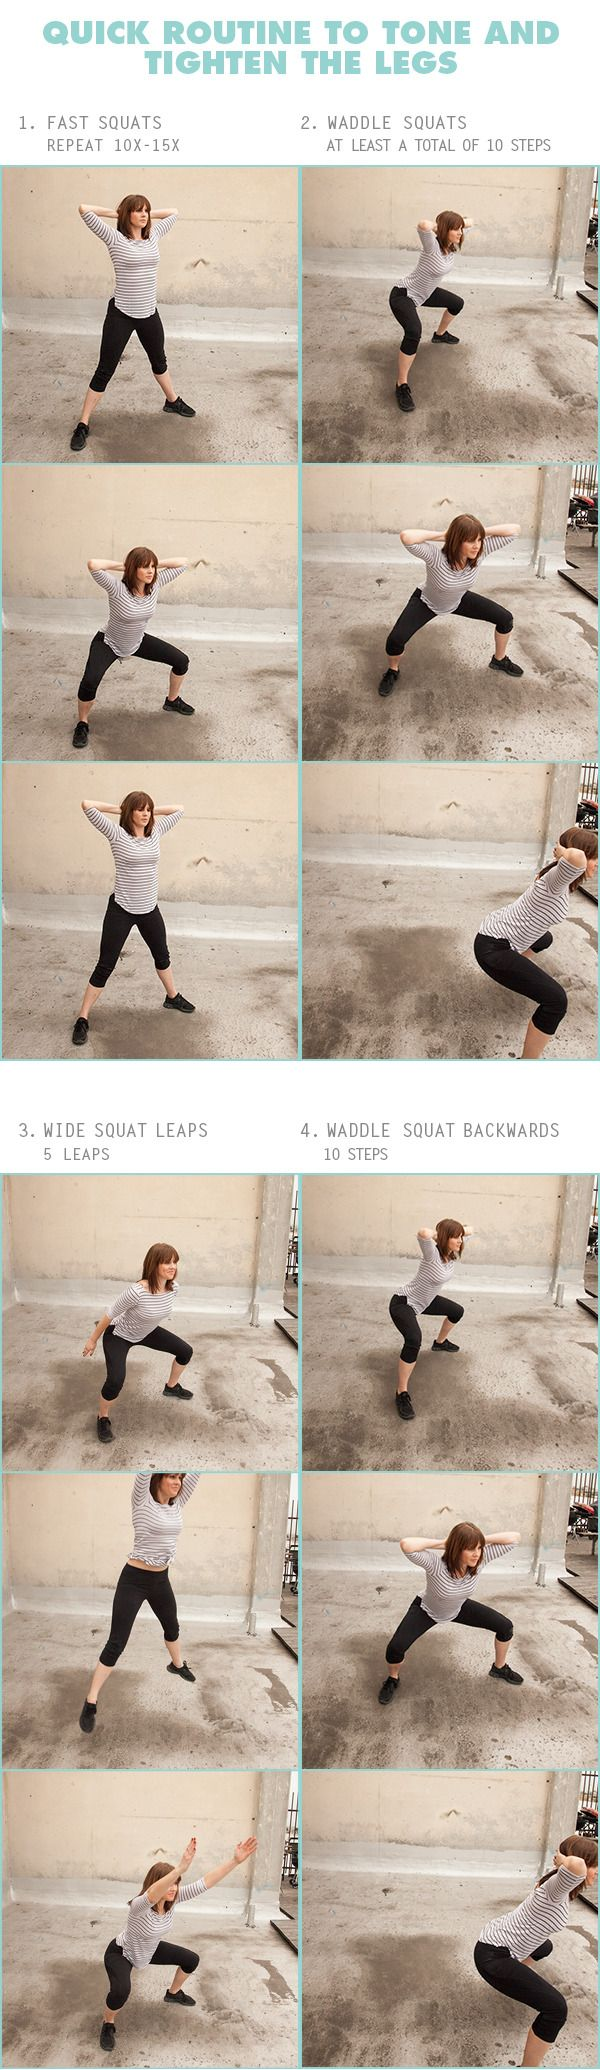 Quick Routine to Tone and Tighten the Legs